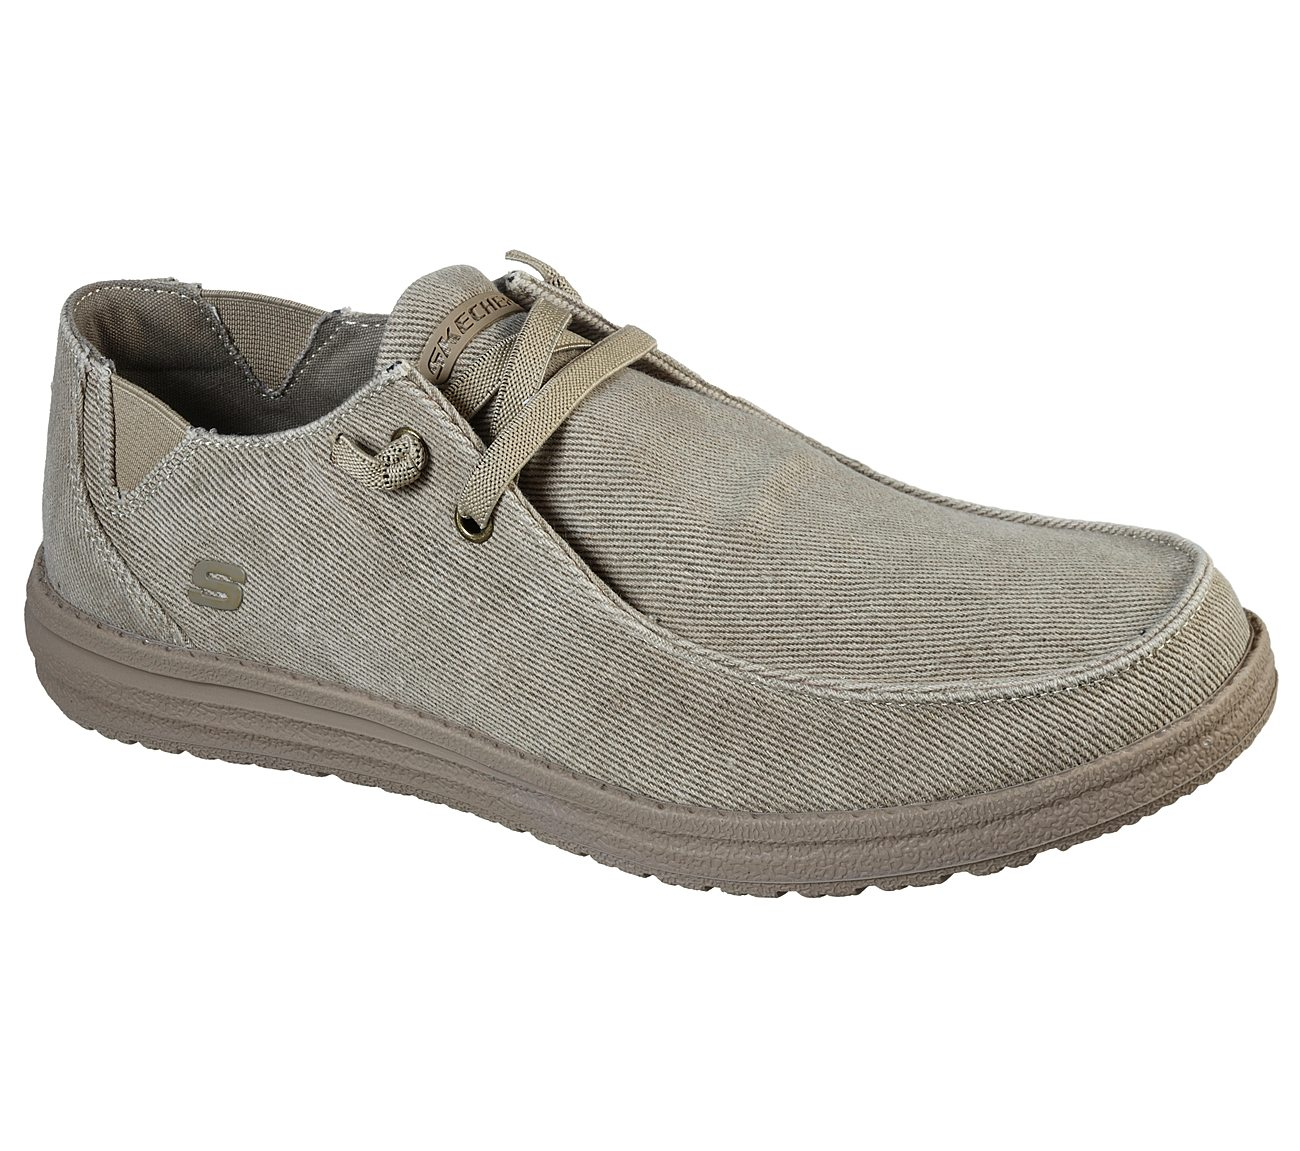 DEPORTIVO SKECHERS MELSON-RAYMON  TAUPE